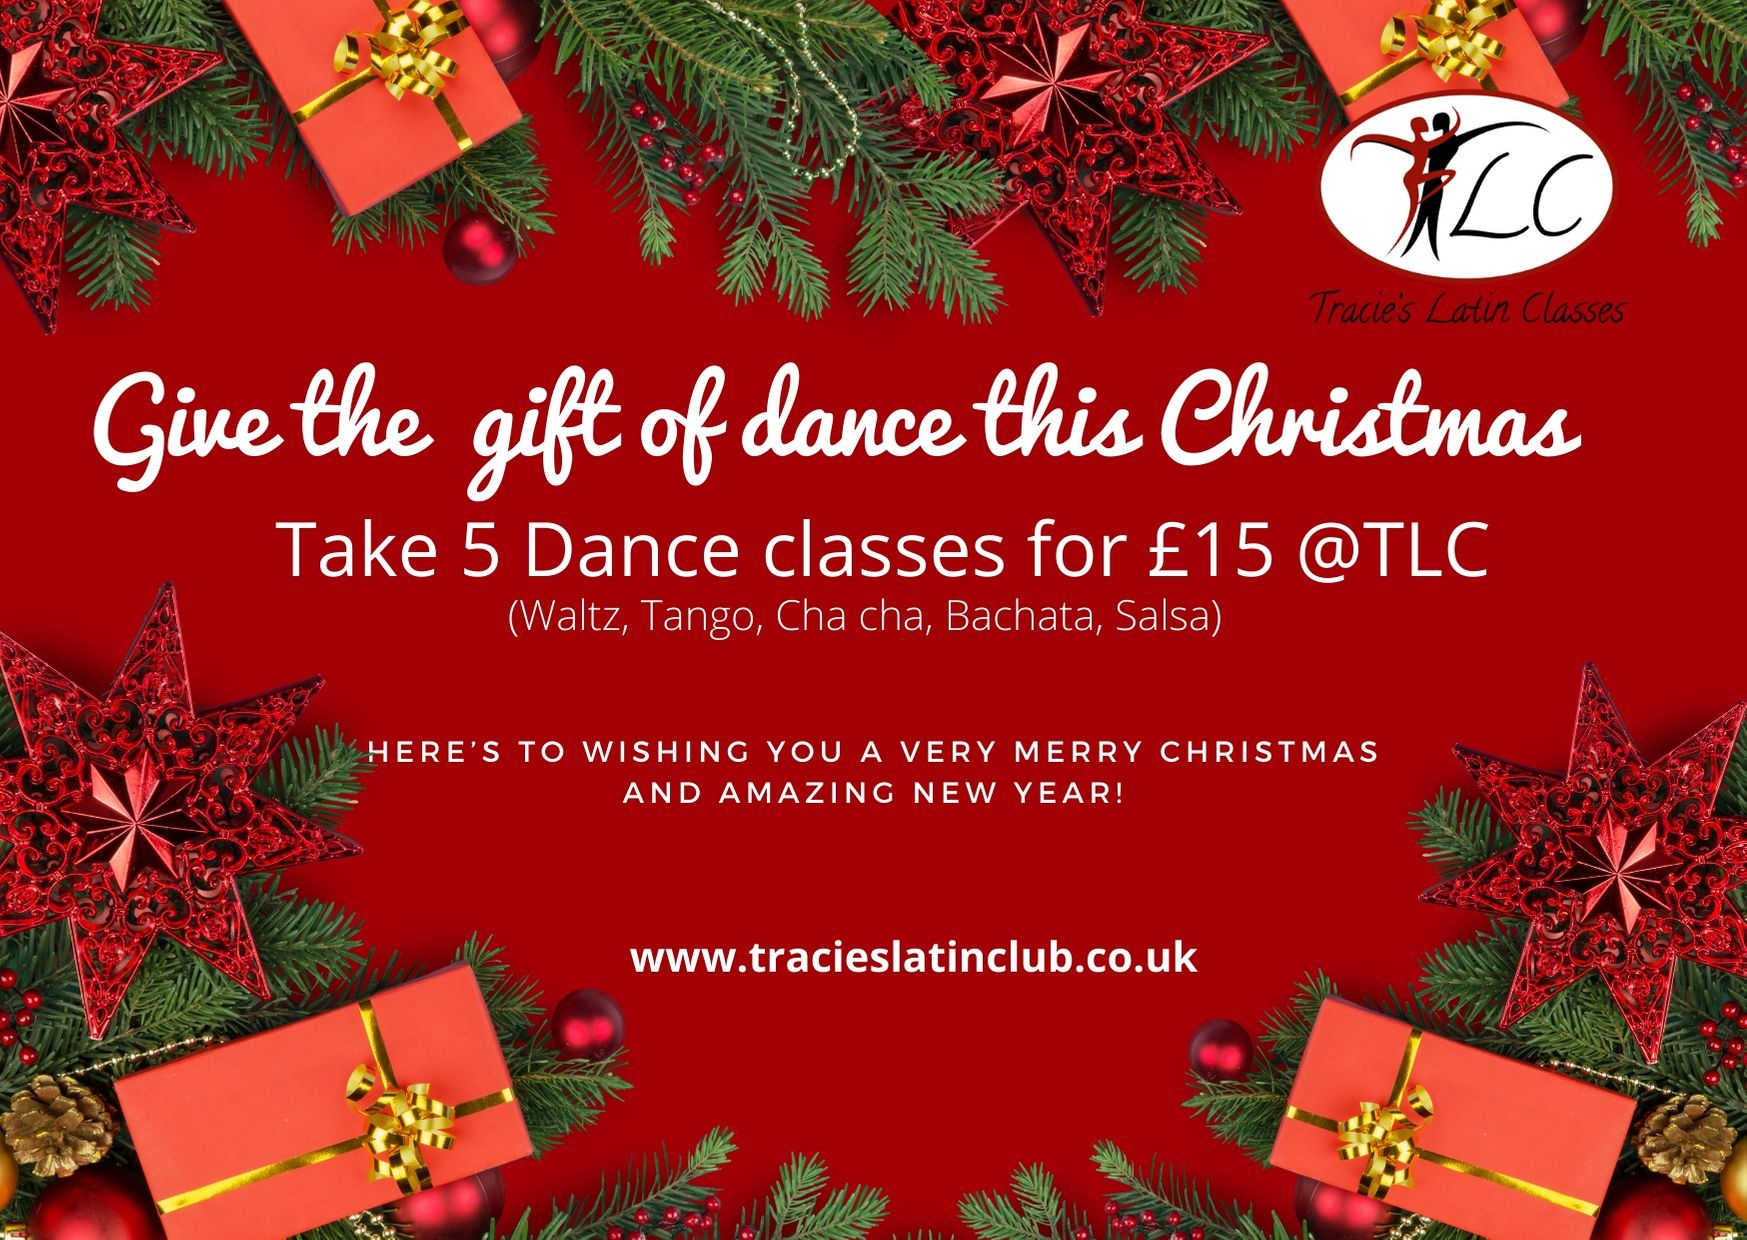 Christmas take 5 dance pass promo picture